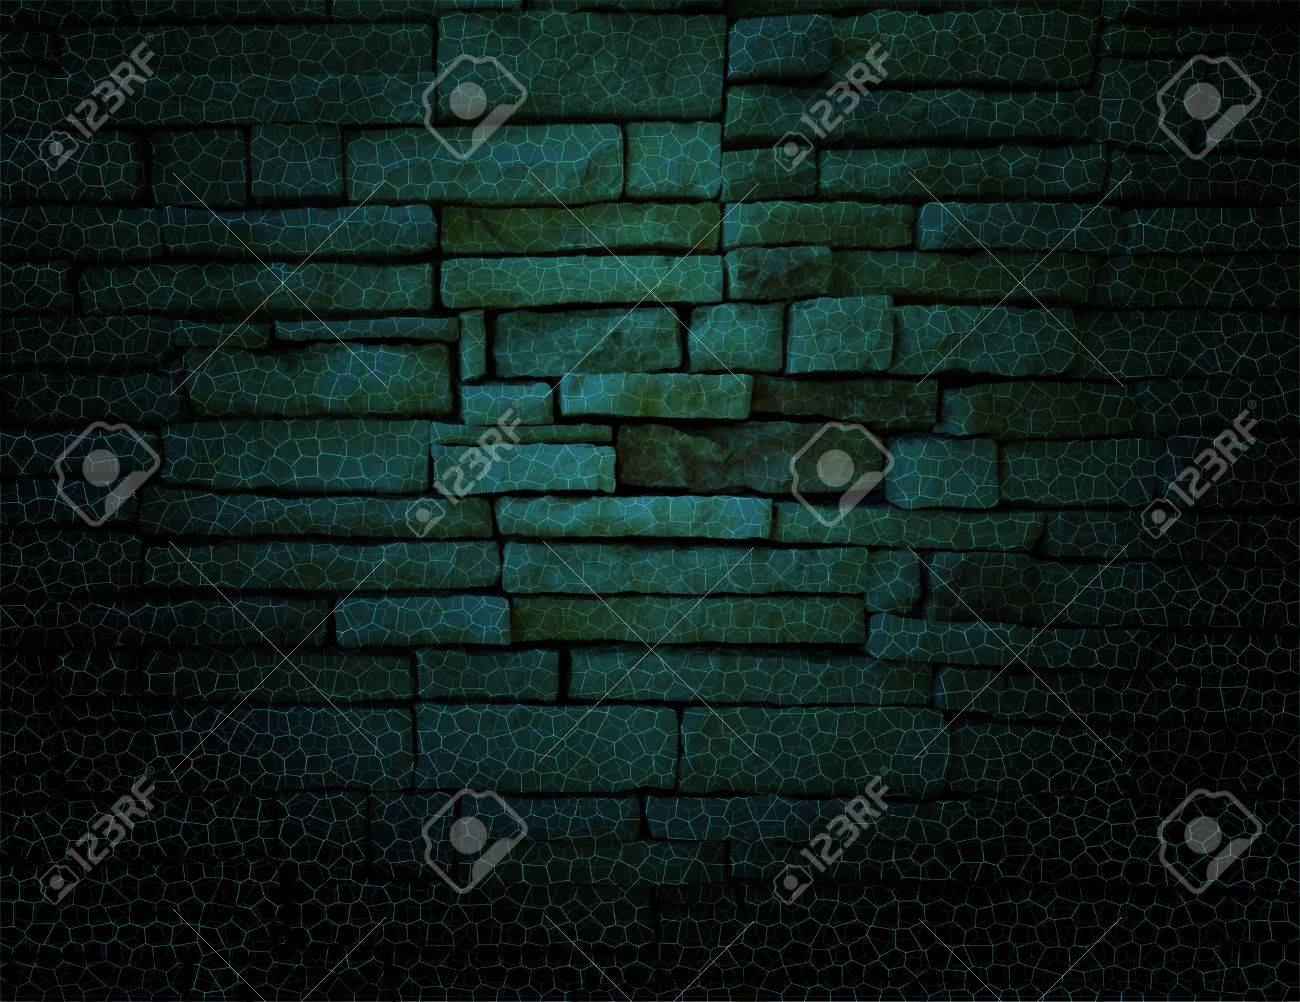 Green Rustic Old Fashioned Brick Wall With Elegant String Lights Grid Background Black